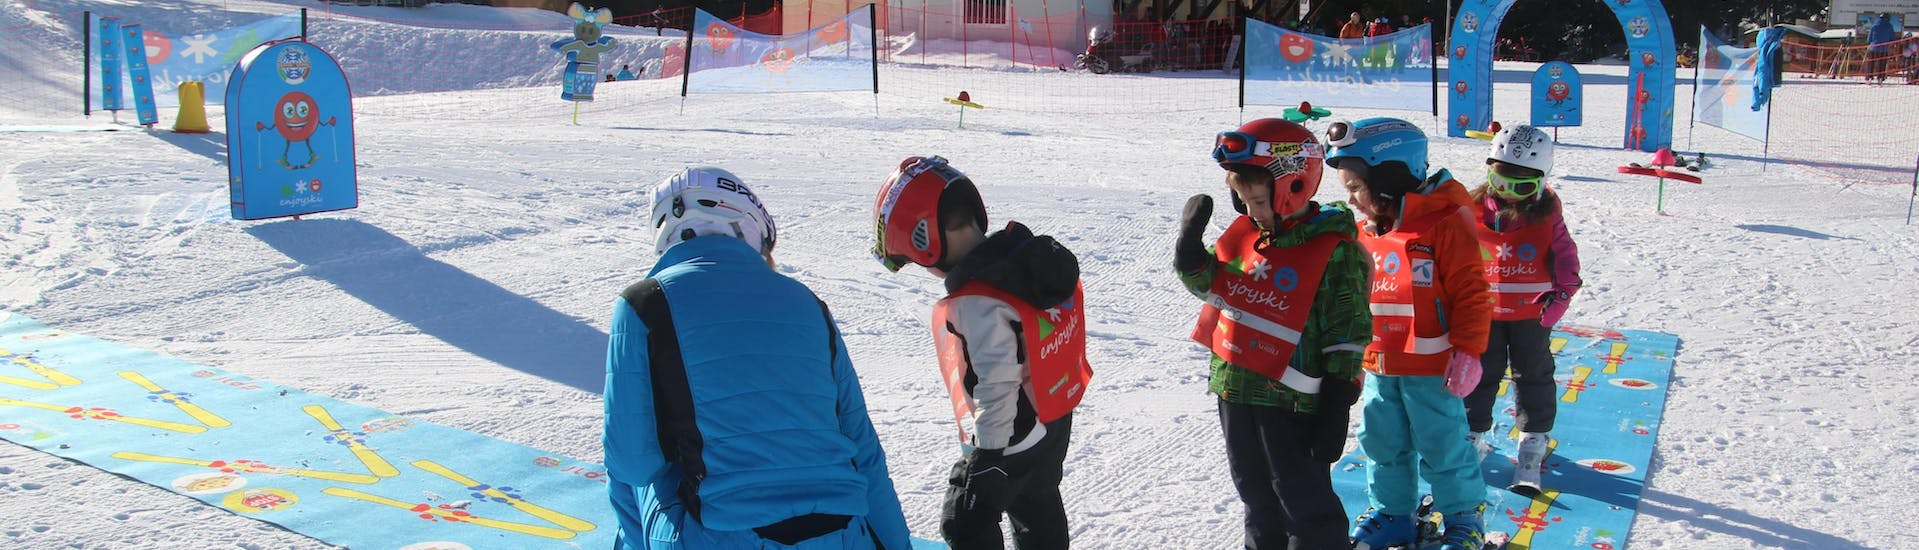 Kids Ski Lessons (6-12 y.) for Beginners - Holidays